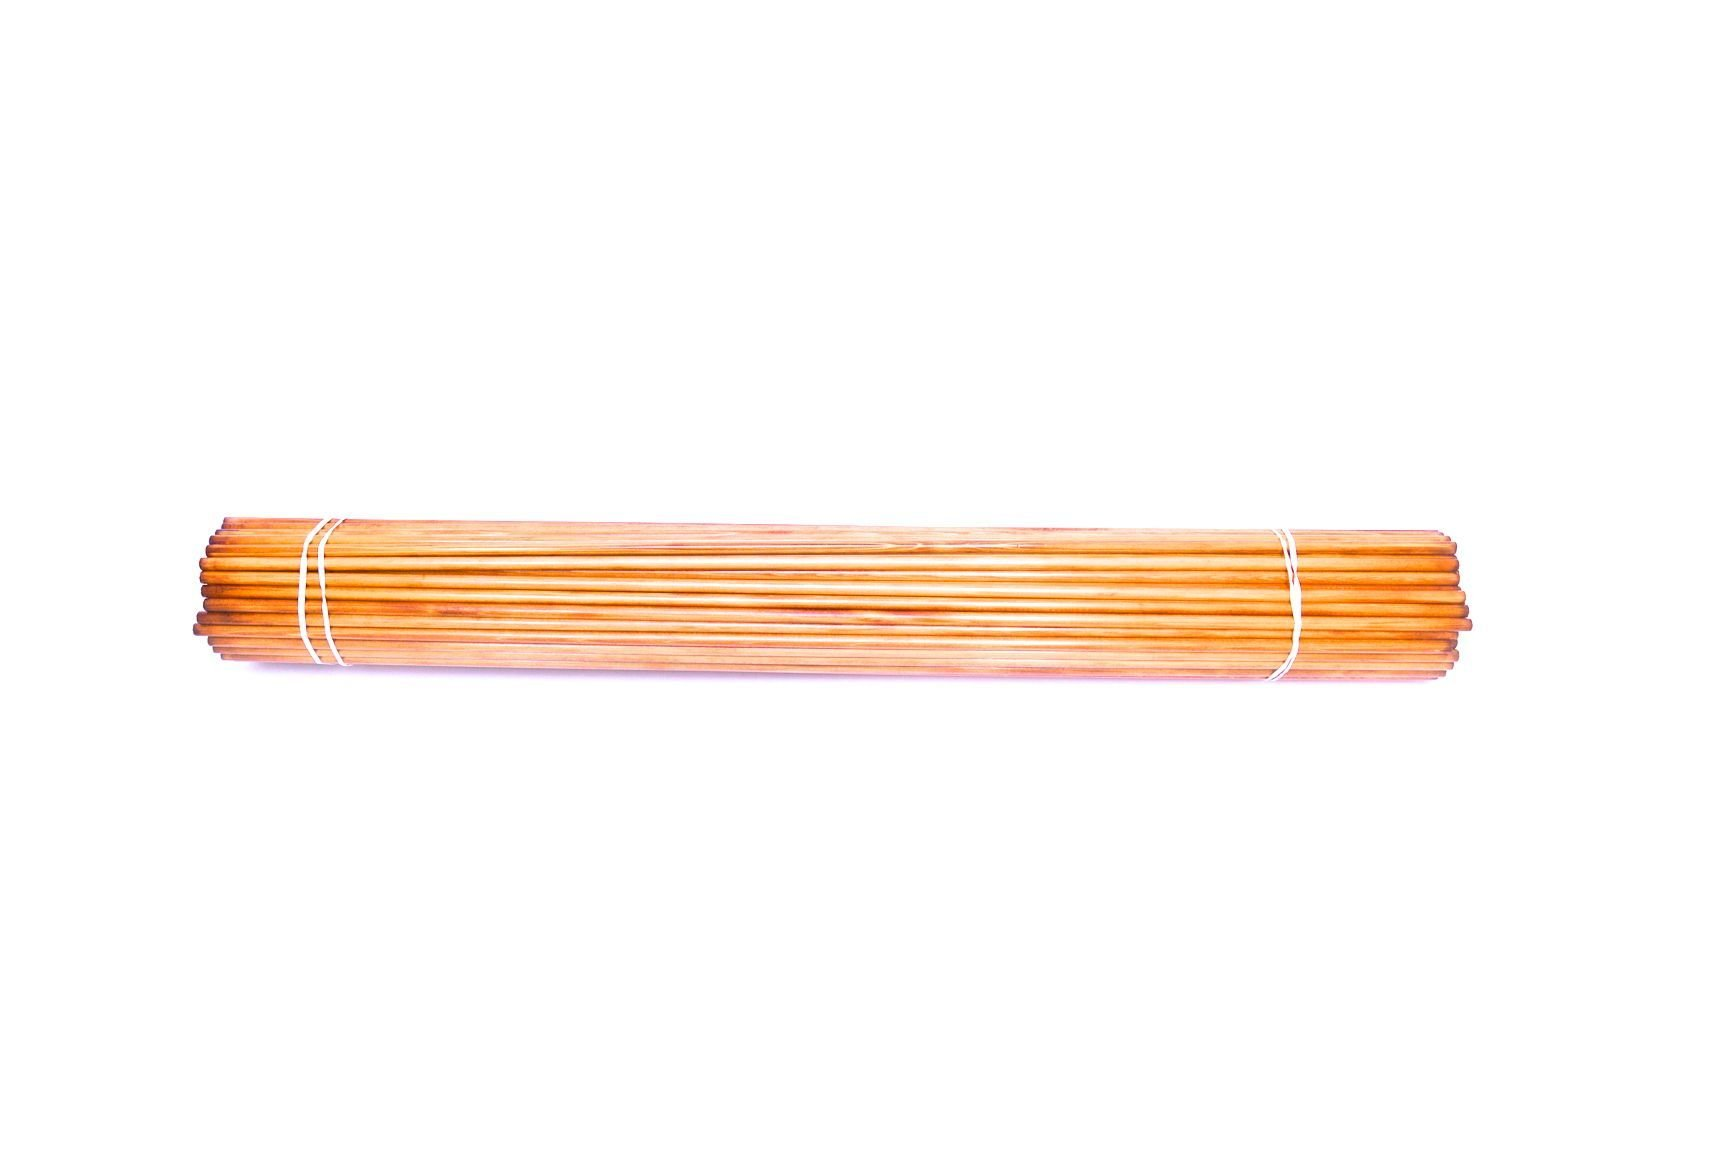 Rose City Archery Port Orford Cedar Premium Shafts for 40-45-Pound Spine (100 Count), 5/16-Inch Diameter/30 1/2-Inch Length, Mahogany Stain